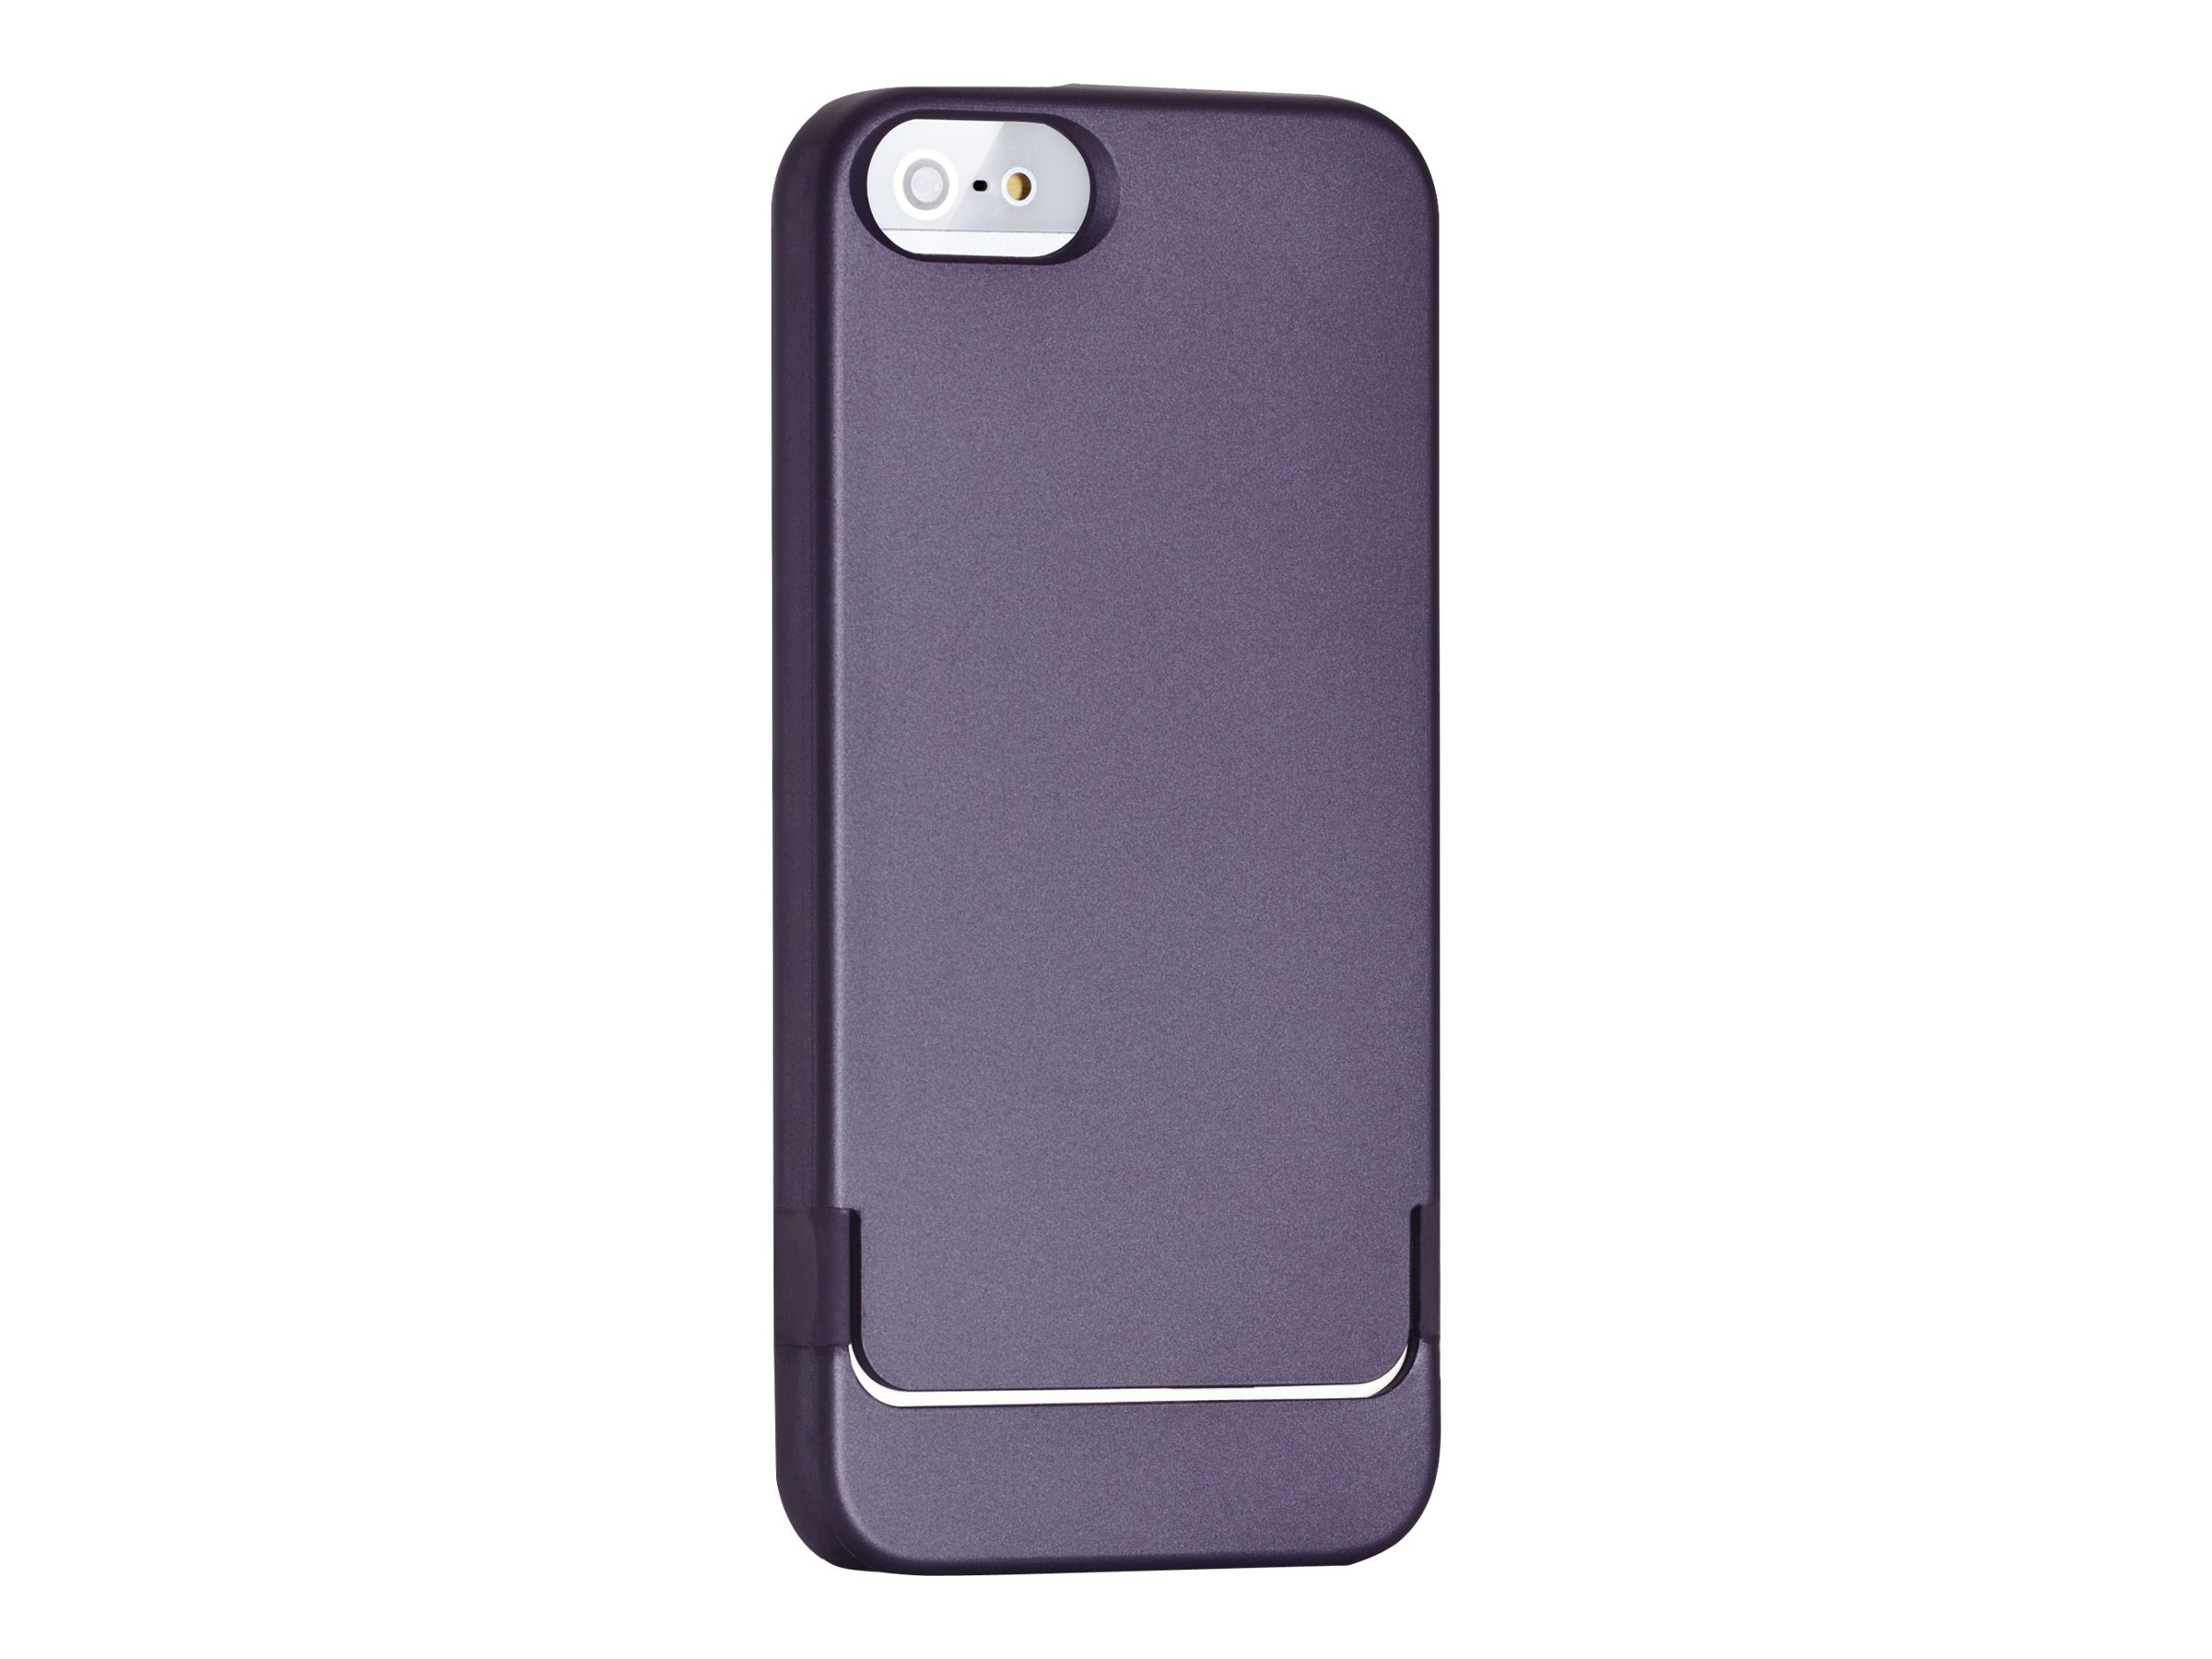 Targus iPhone 5 Slider Case, TFD03307US, 15523293, Carrying Cases - Phones/PDAs